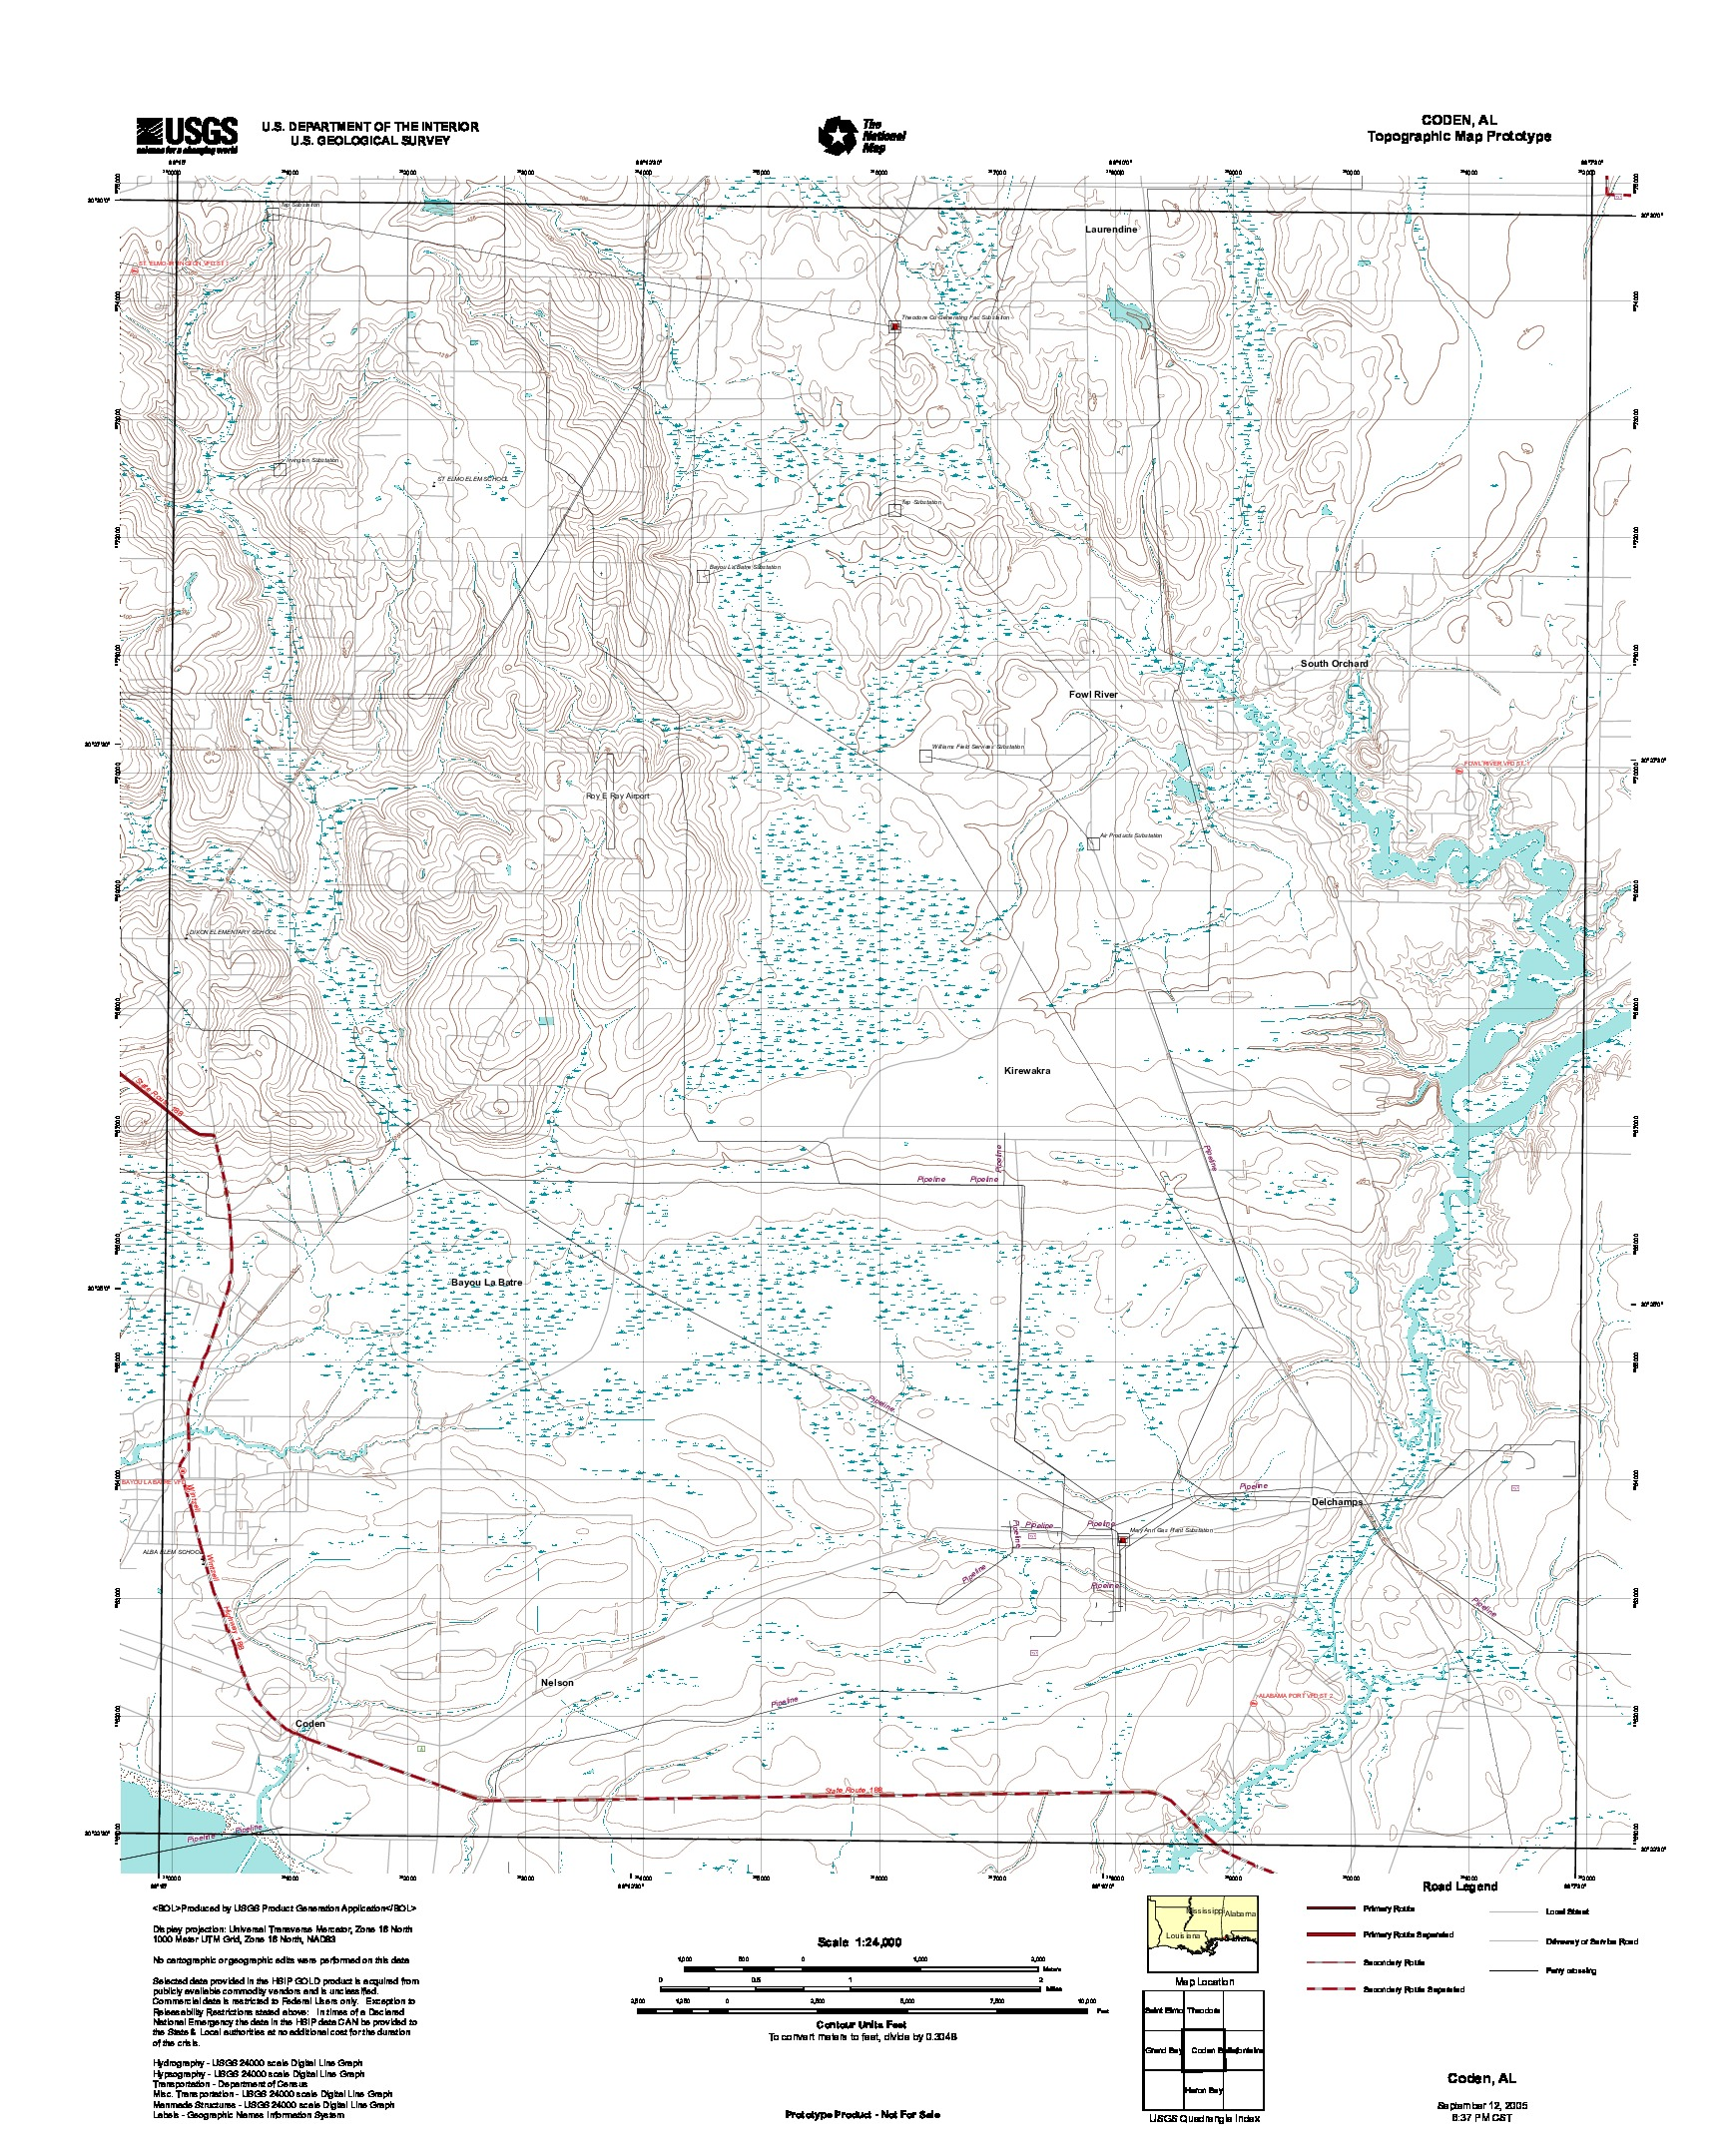 Coden, Topographic Map Prototype, Alabama, United States, September 12, 2005